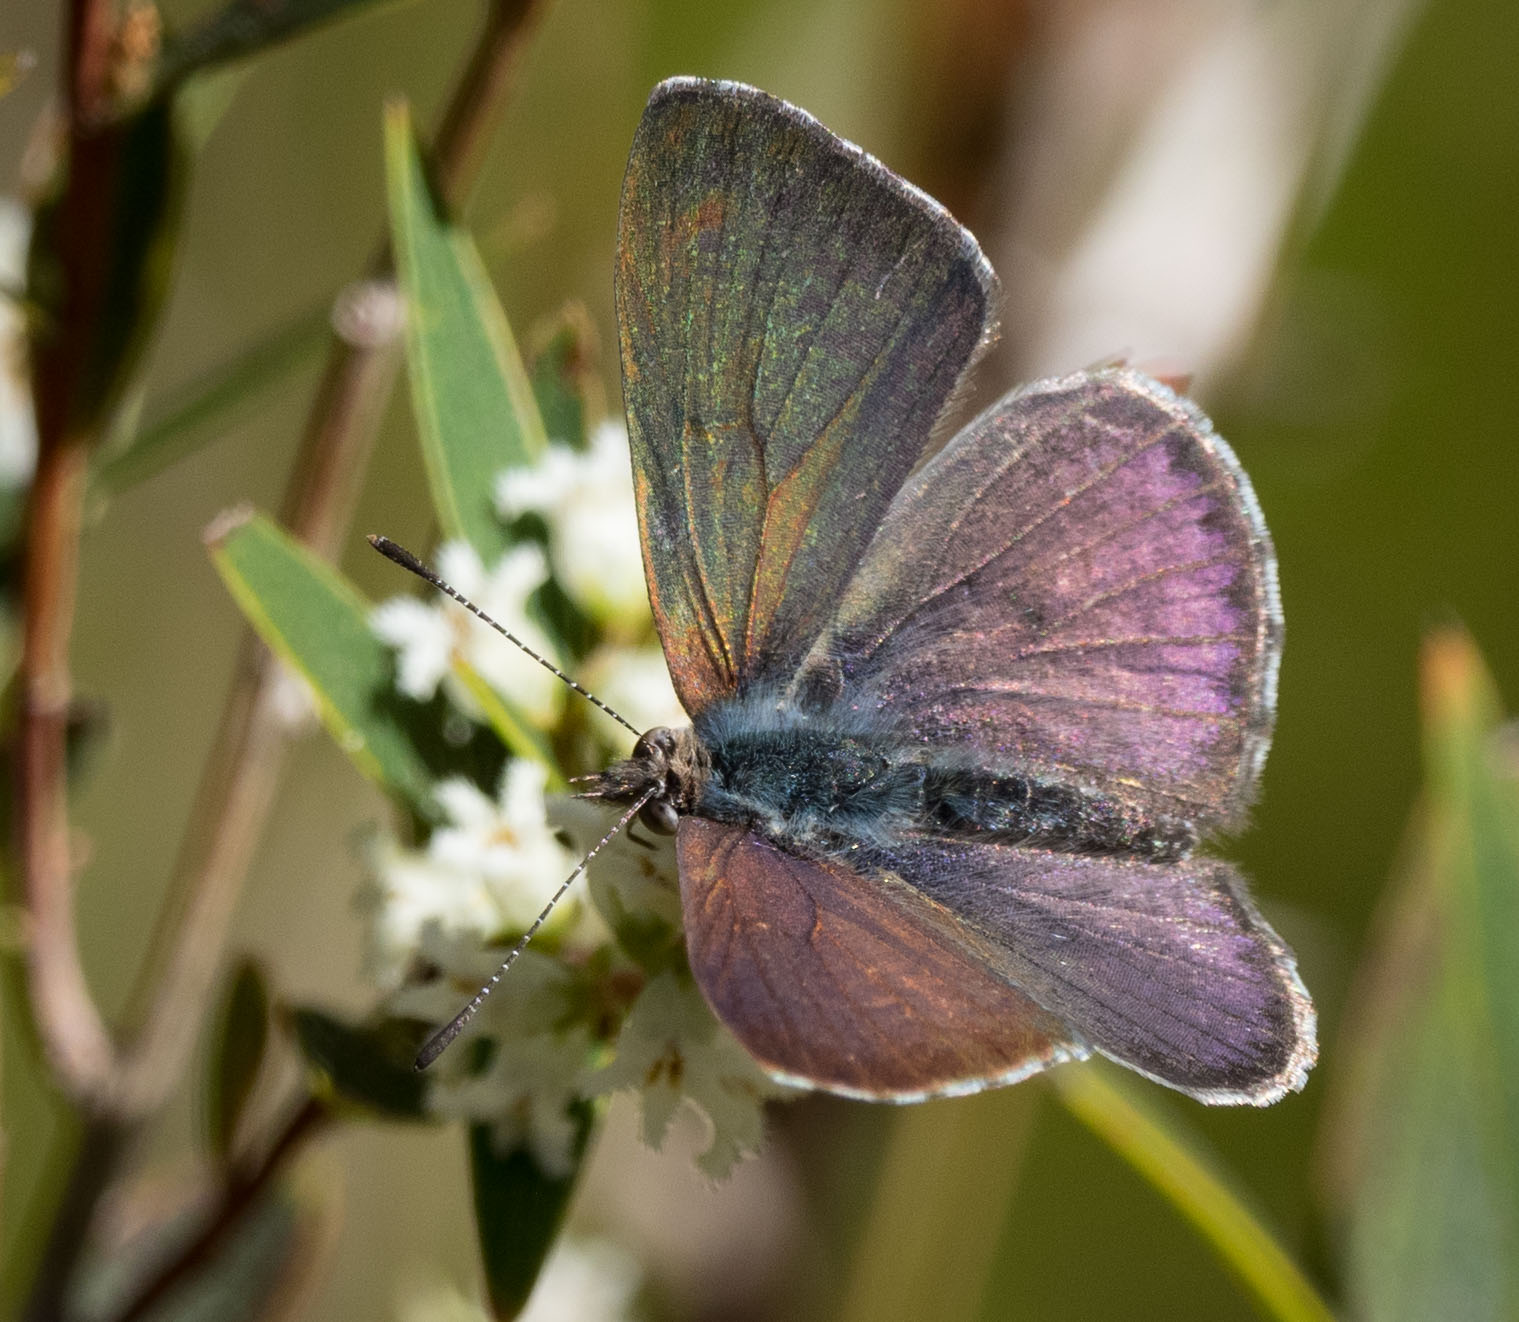 The Common Dusky Blue butterfly ( Candalides hyacinthinus ) making its first appearance for the year. Probably newly-eclosed.